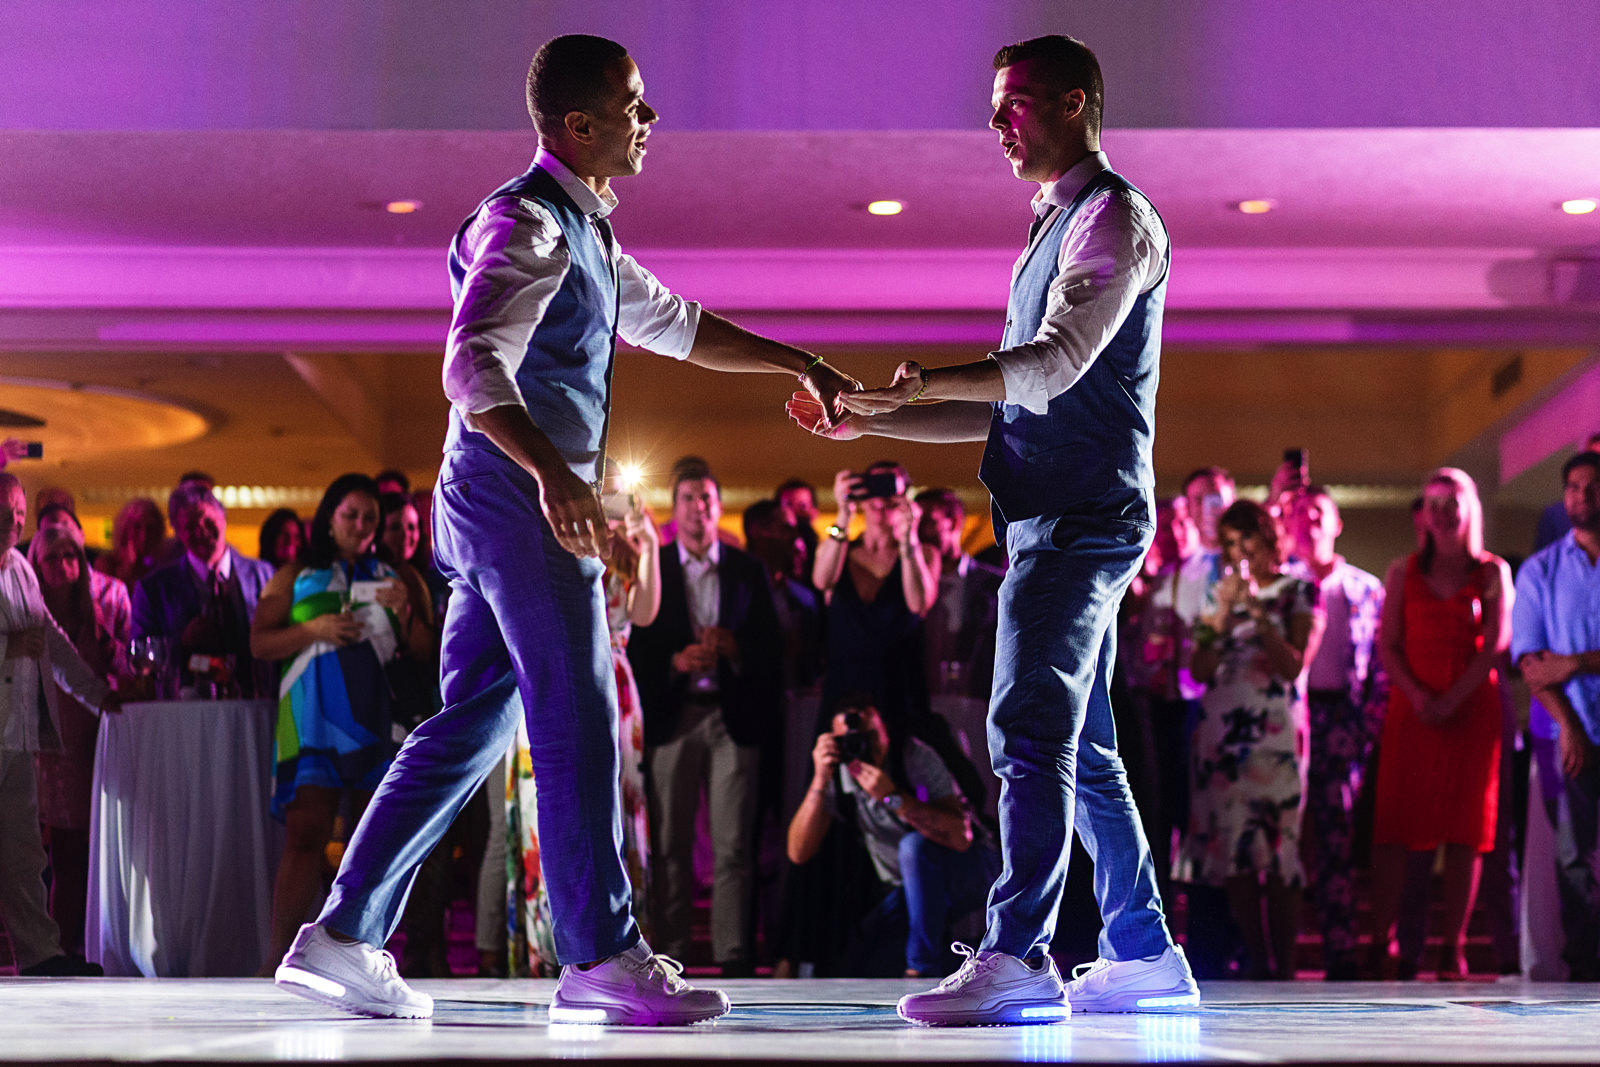 Grooms giving it all during their coreographed wedding first dance